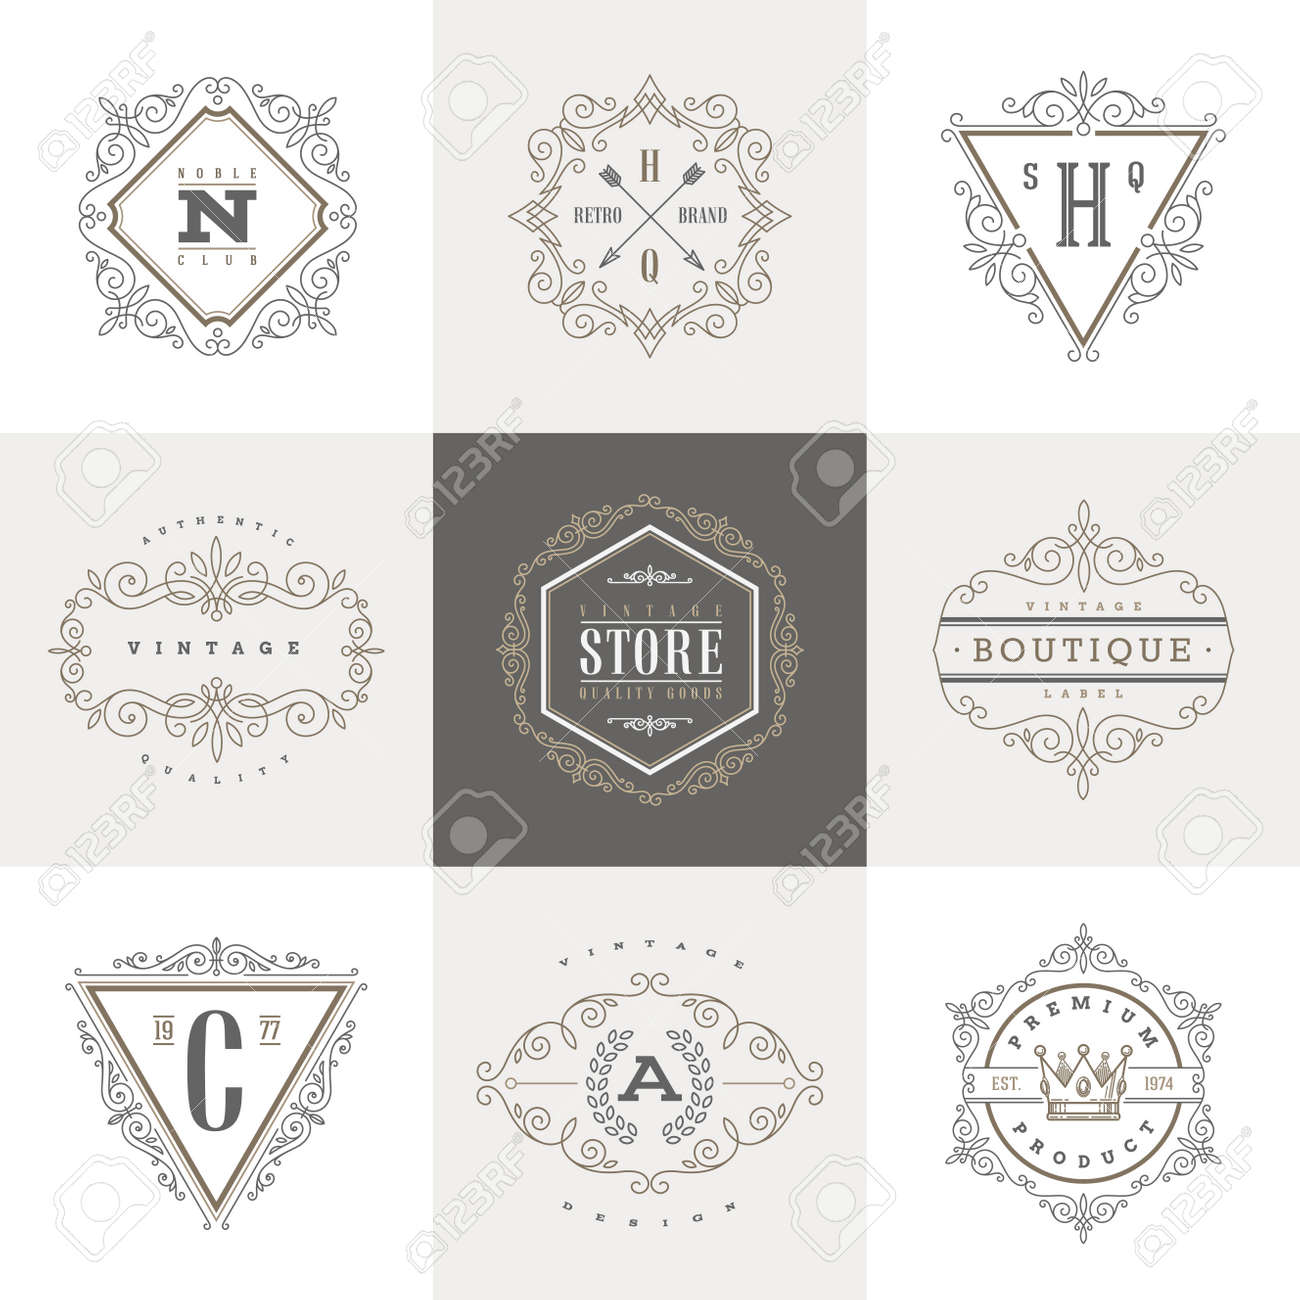 Monogram template with flourishes calligraphic elegant ornament elements. Identity design with letter for cafe, shop, store, restaurant, boutique, hotel, heraldic, fashion and etc. - 40014780